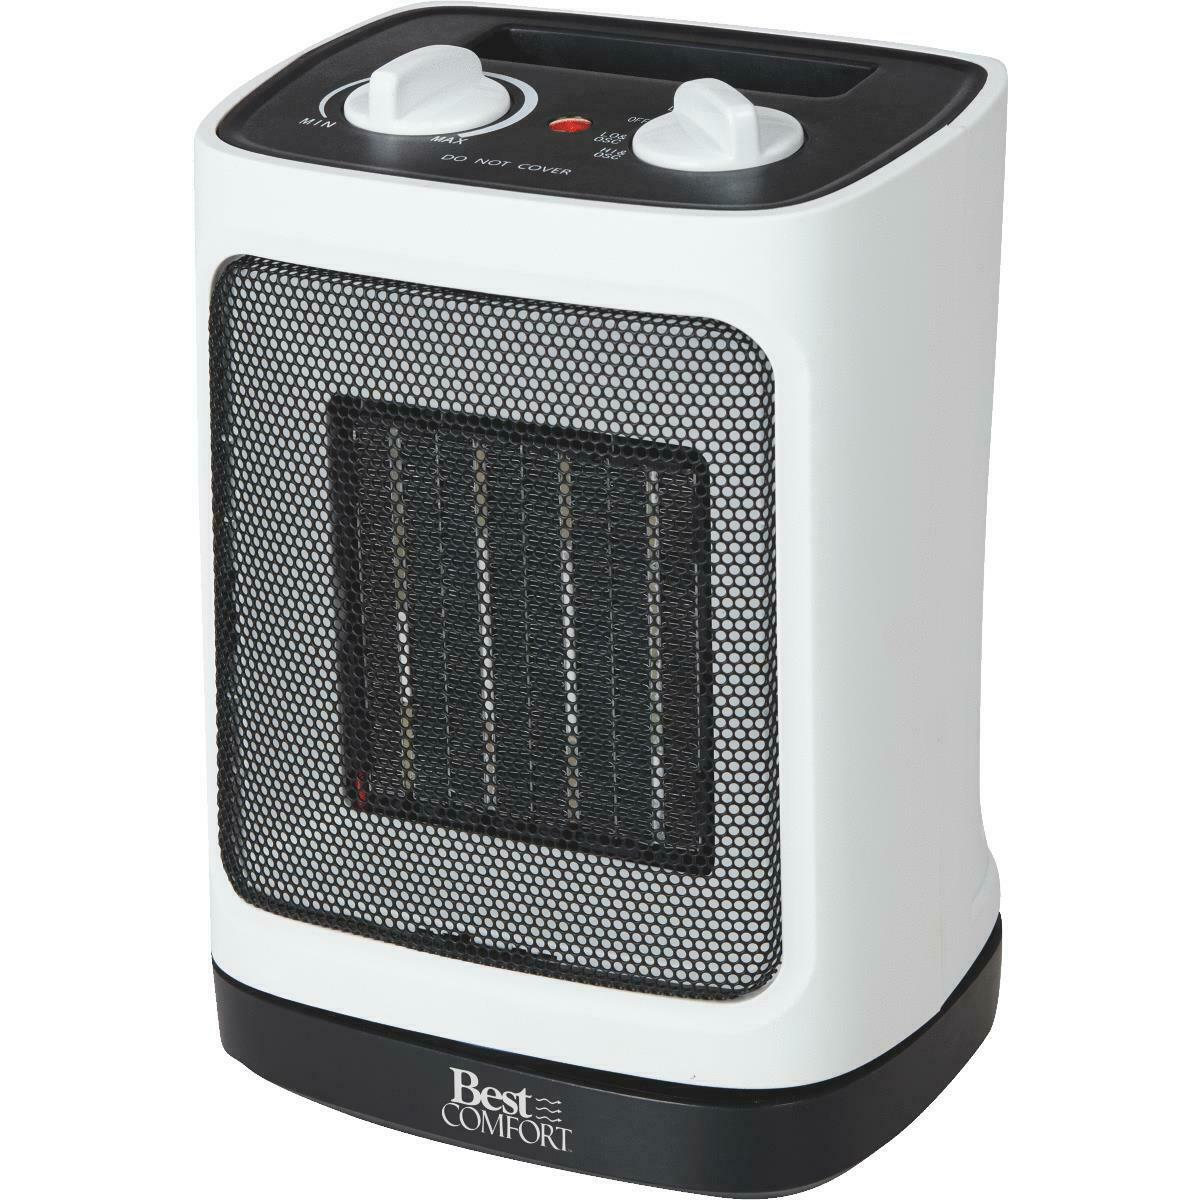 Portable Electric Space Heater Oscillating Mini Outdoor Garage Heater - Morealis